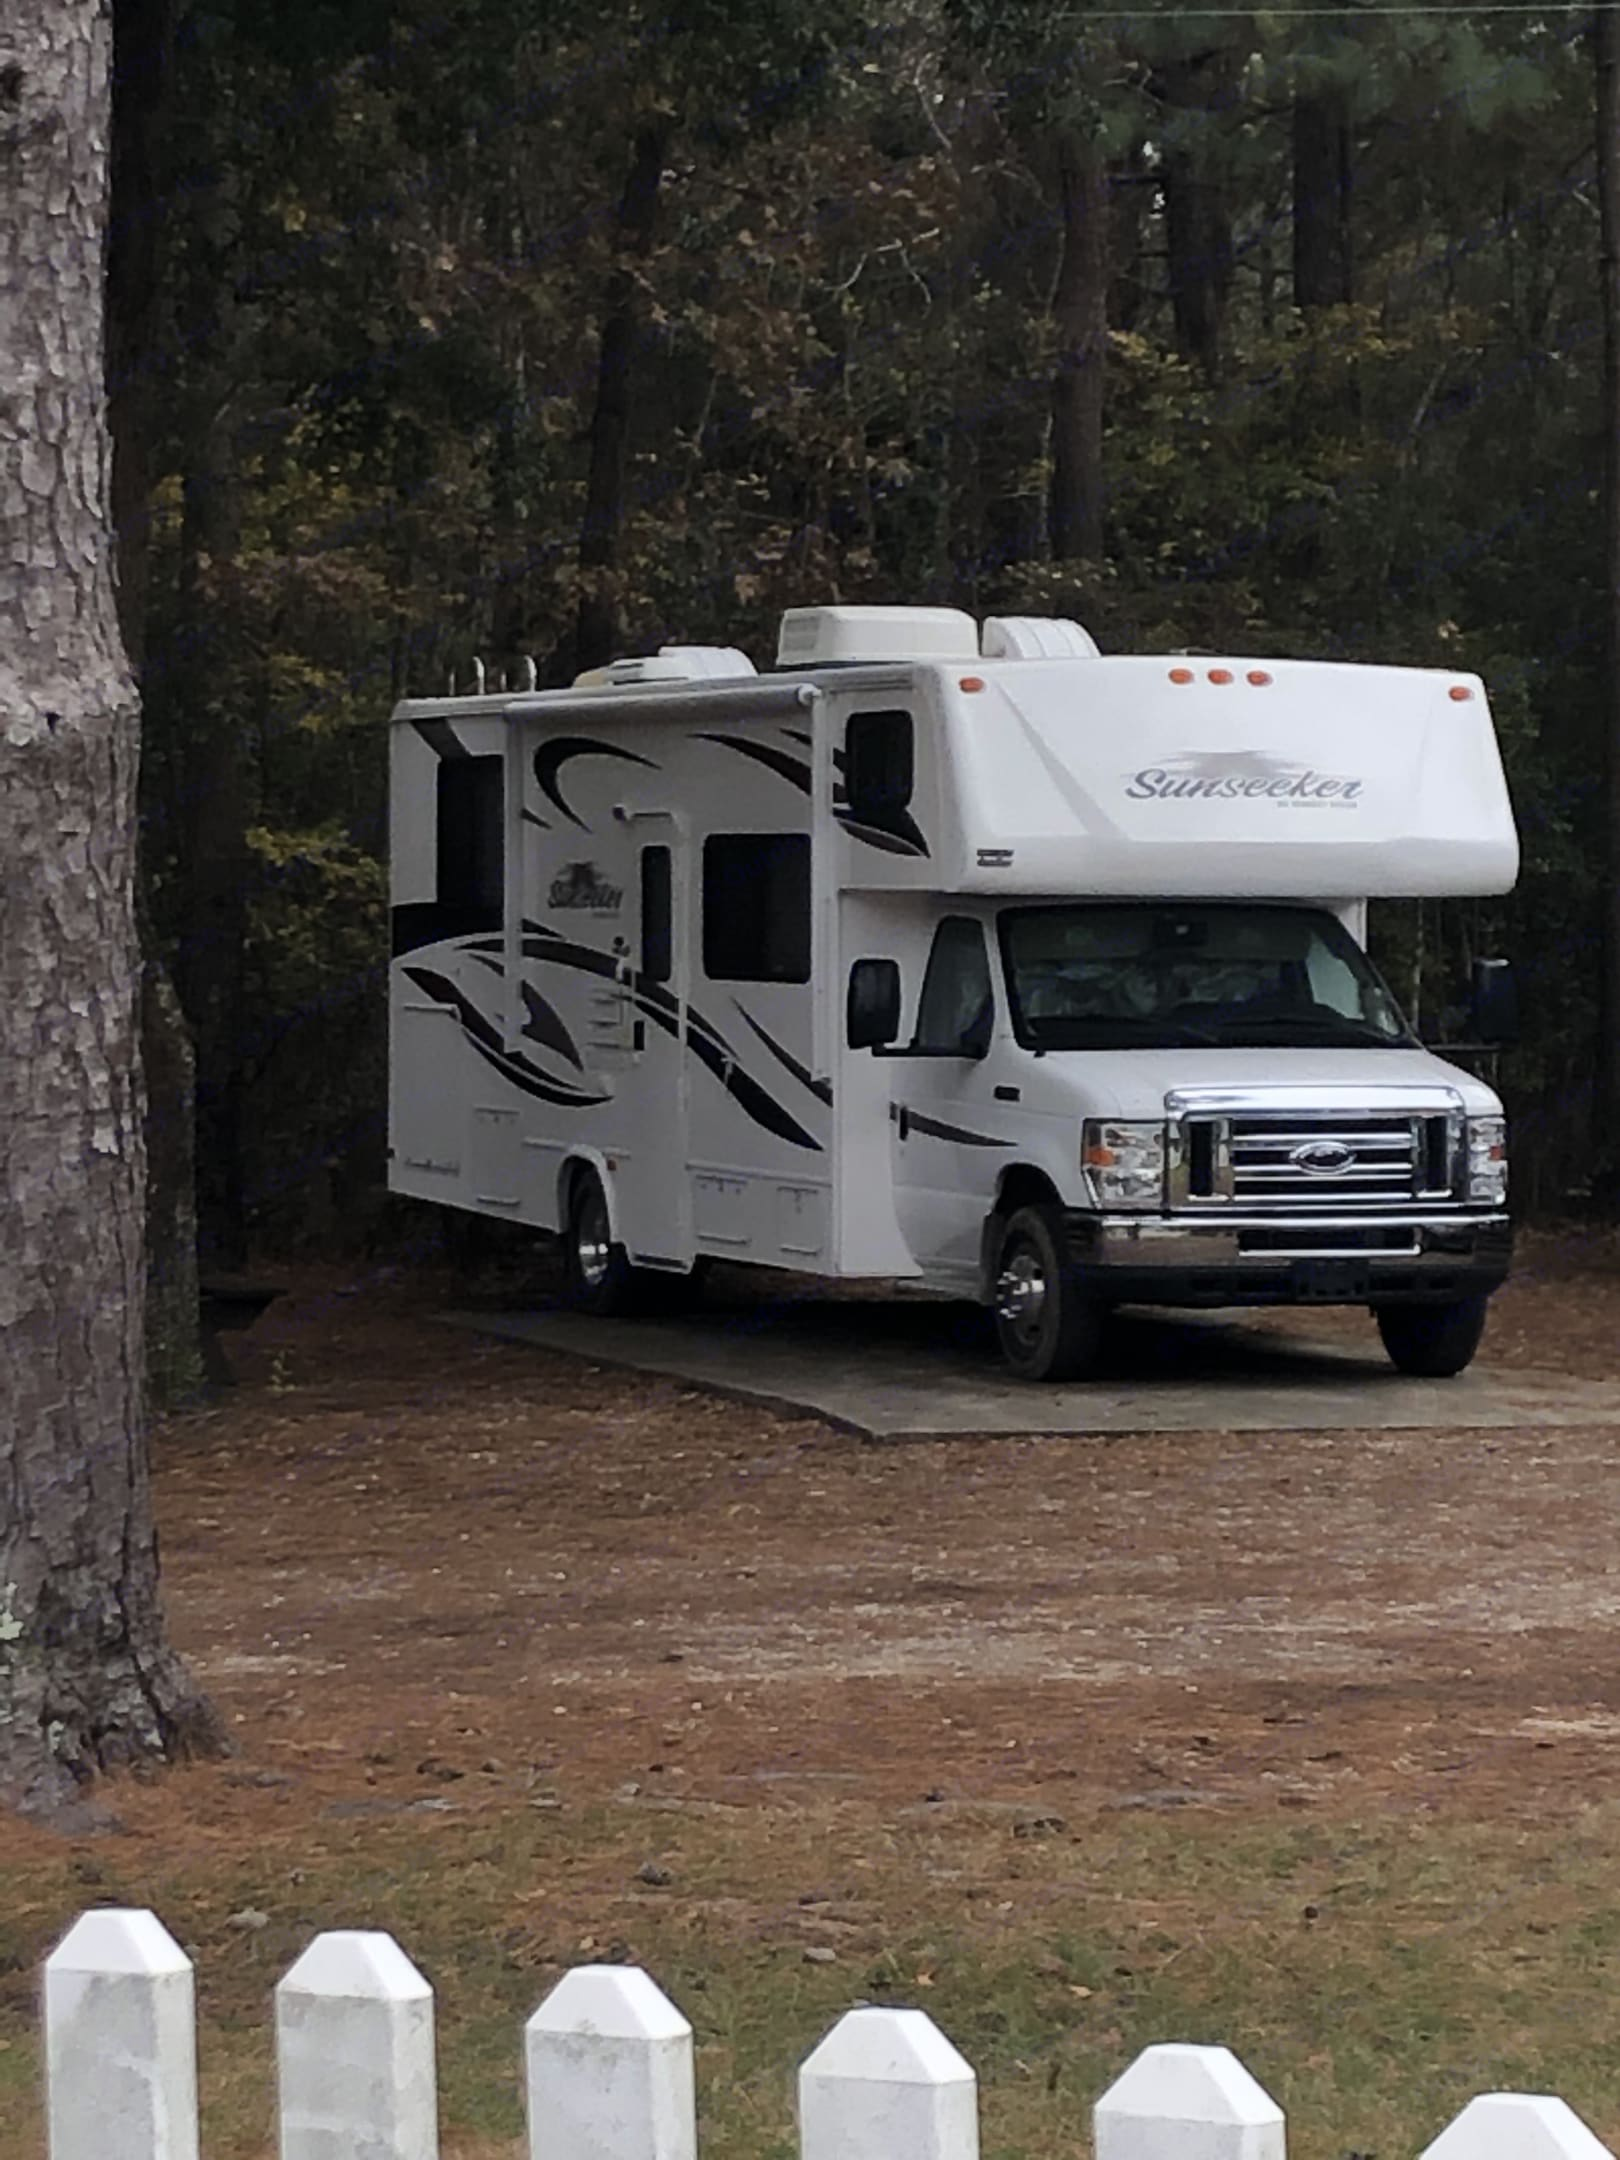 This was camping at Holbrook park.. Forest River Sunseeker 2013